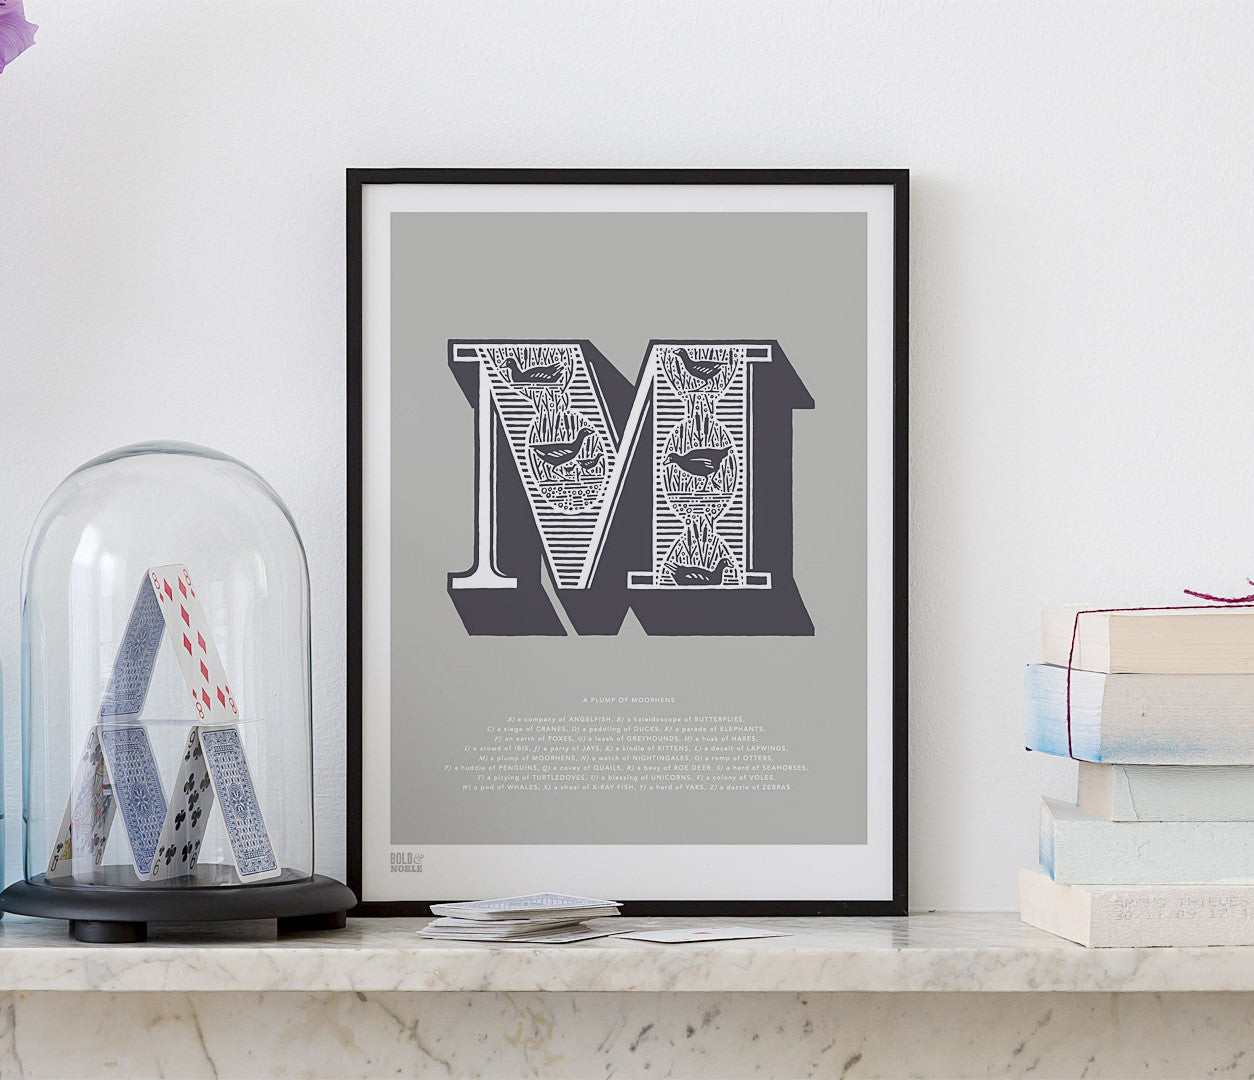 Pictures and Wall Art, Screen Printed Illustrated Letter M design in putty grey